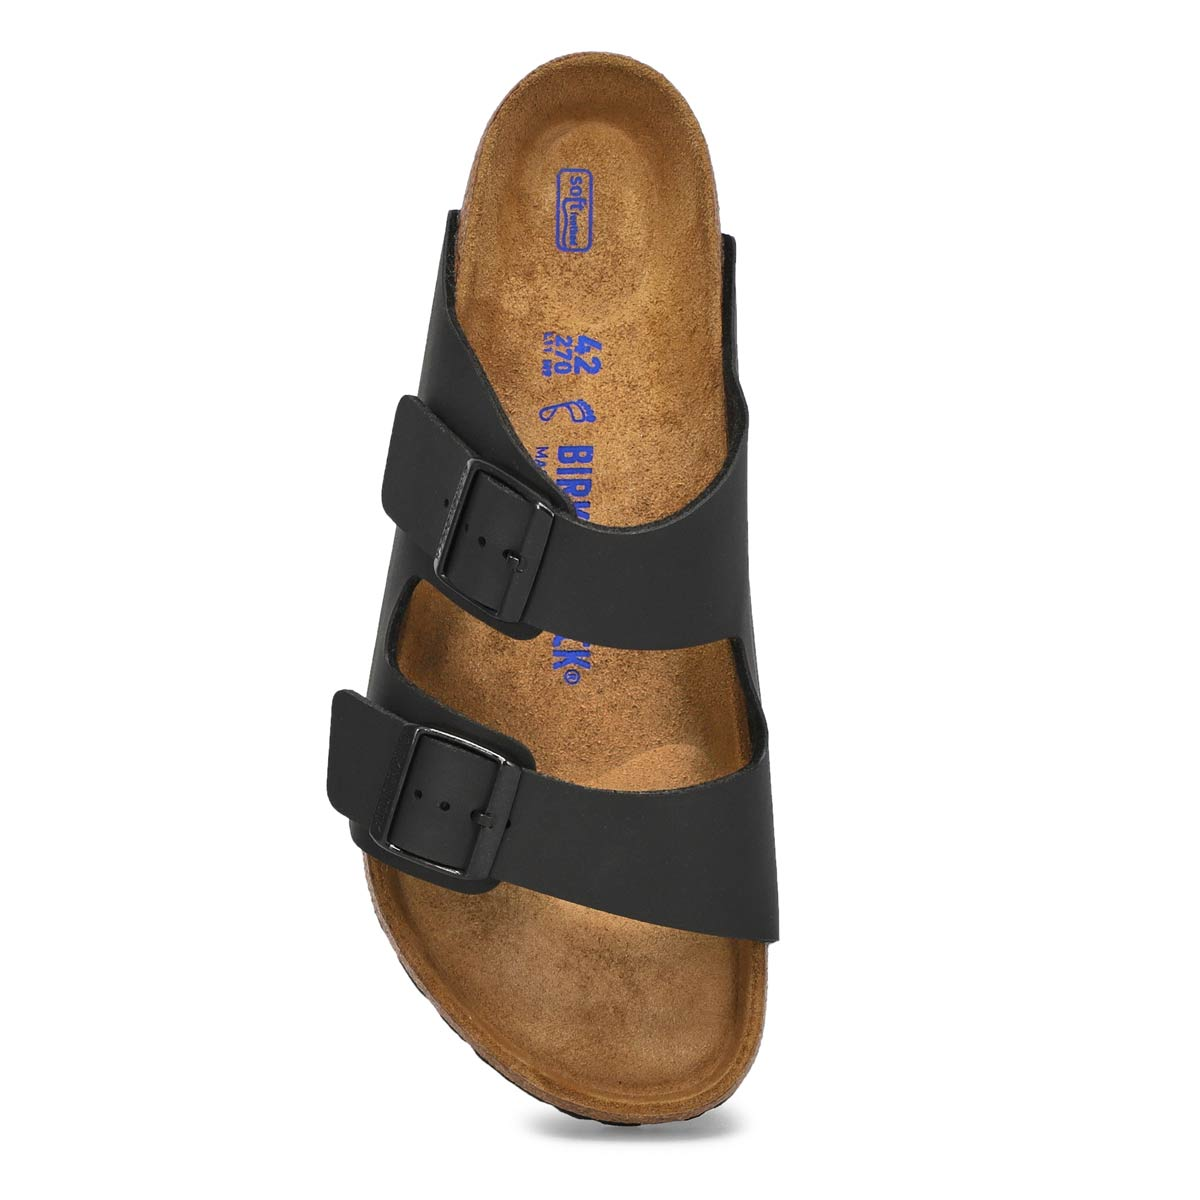 Men's Arizona BF Sandal - Black